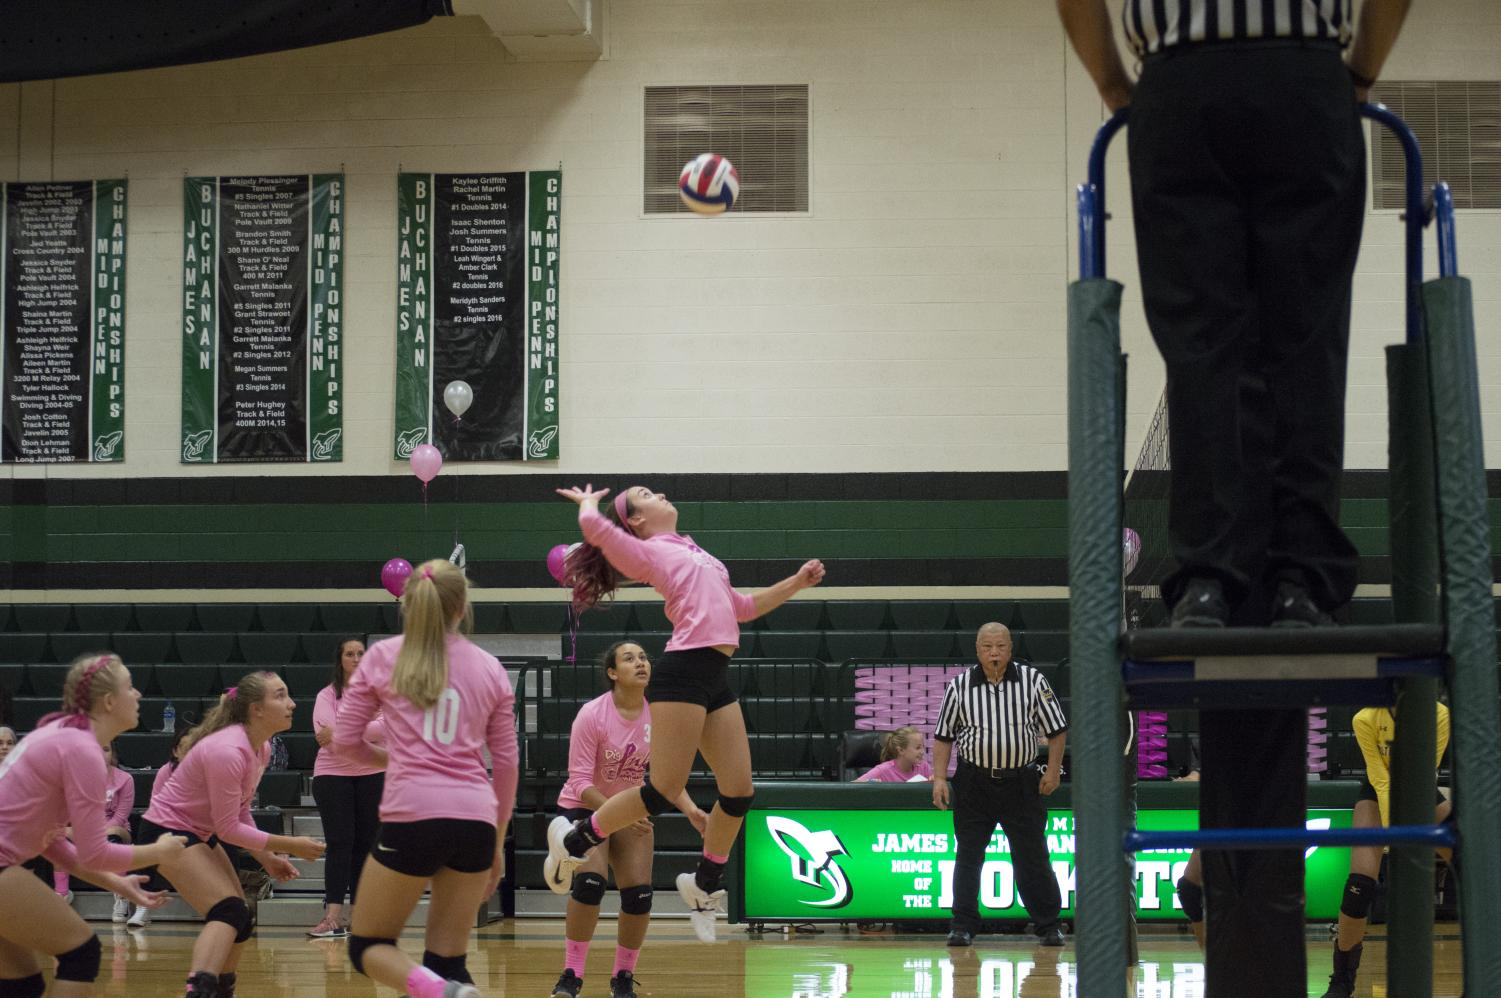 Rylynn Welsh (9), a freshman starter, attempts to make a kill on the opposing team's side to bring back JB in points.